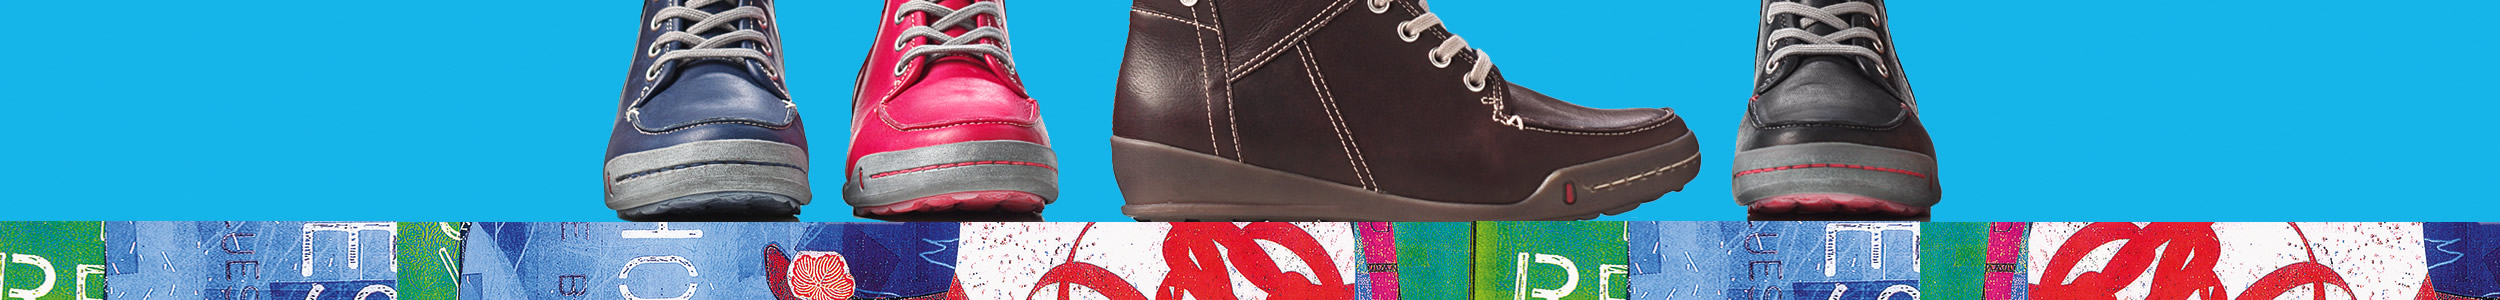 wolky shoes banner design